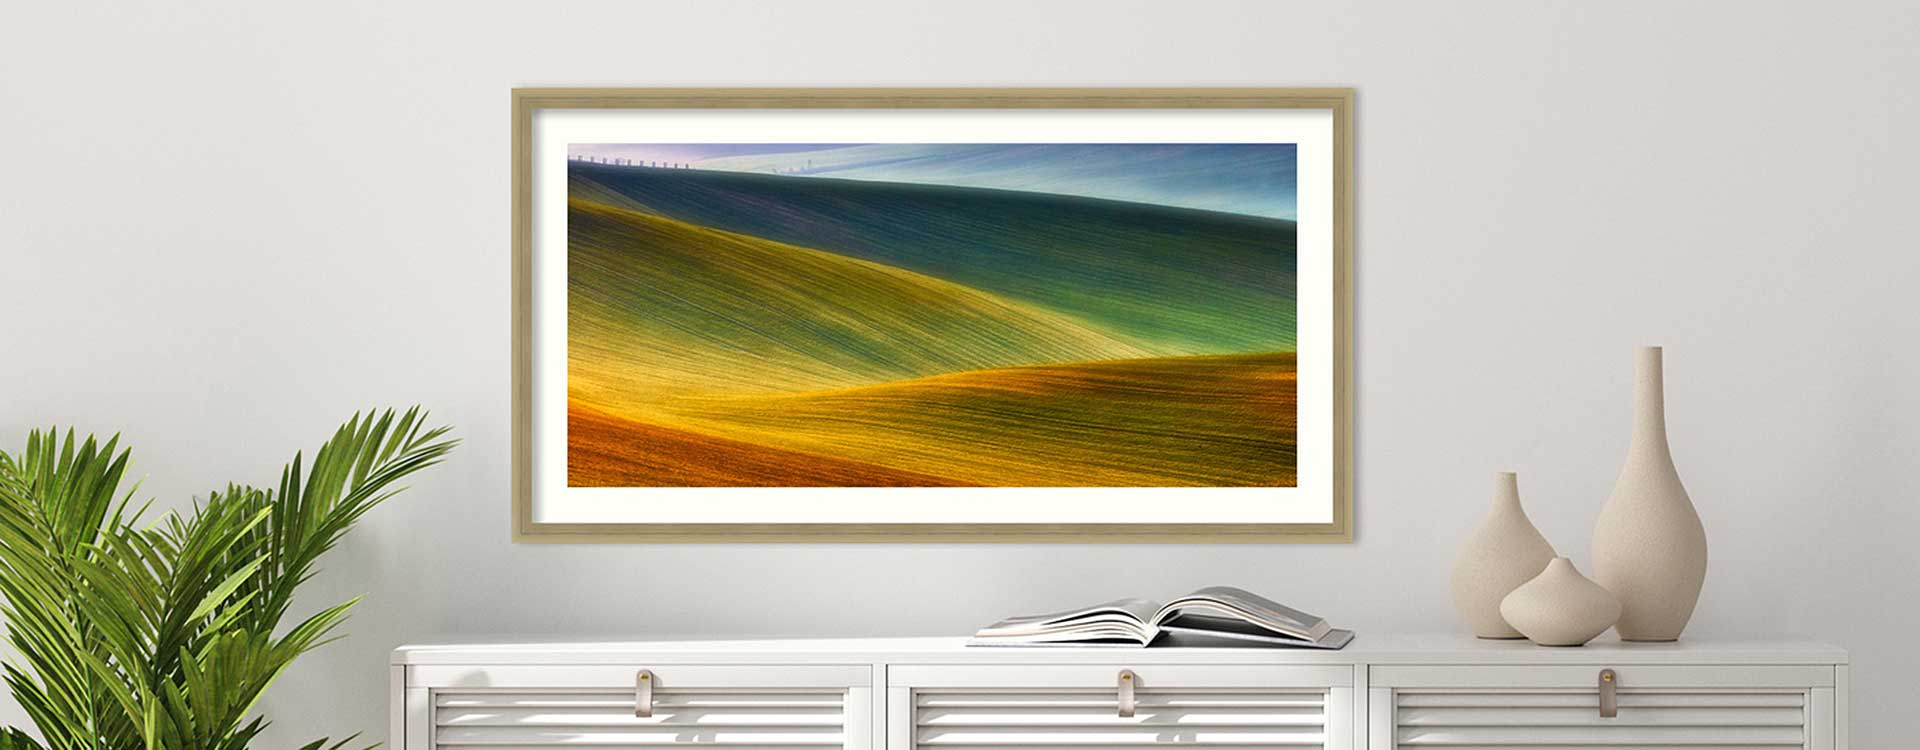 Abstract picture of sand dunes